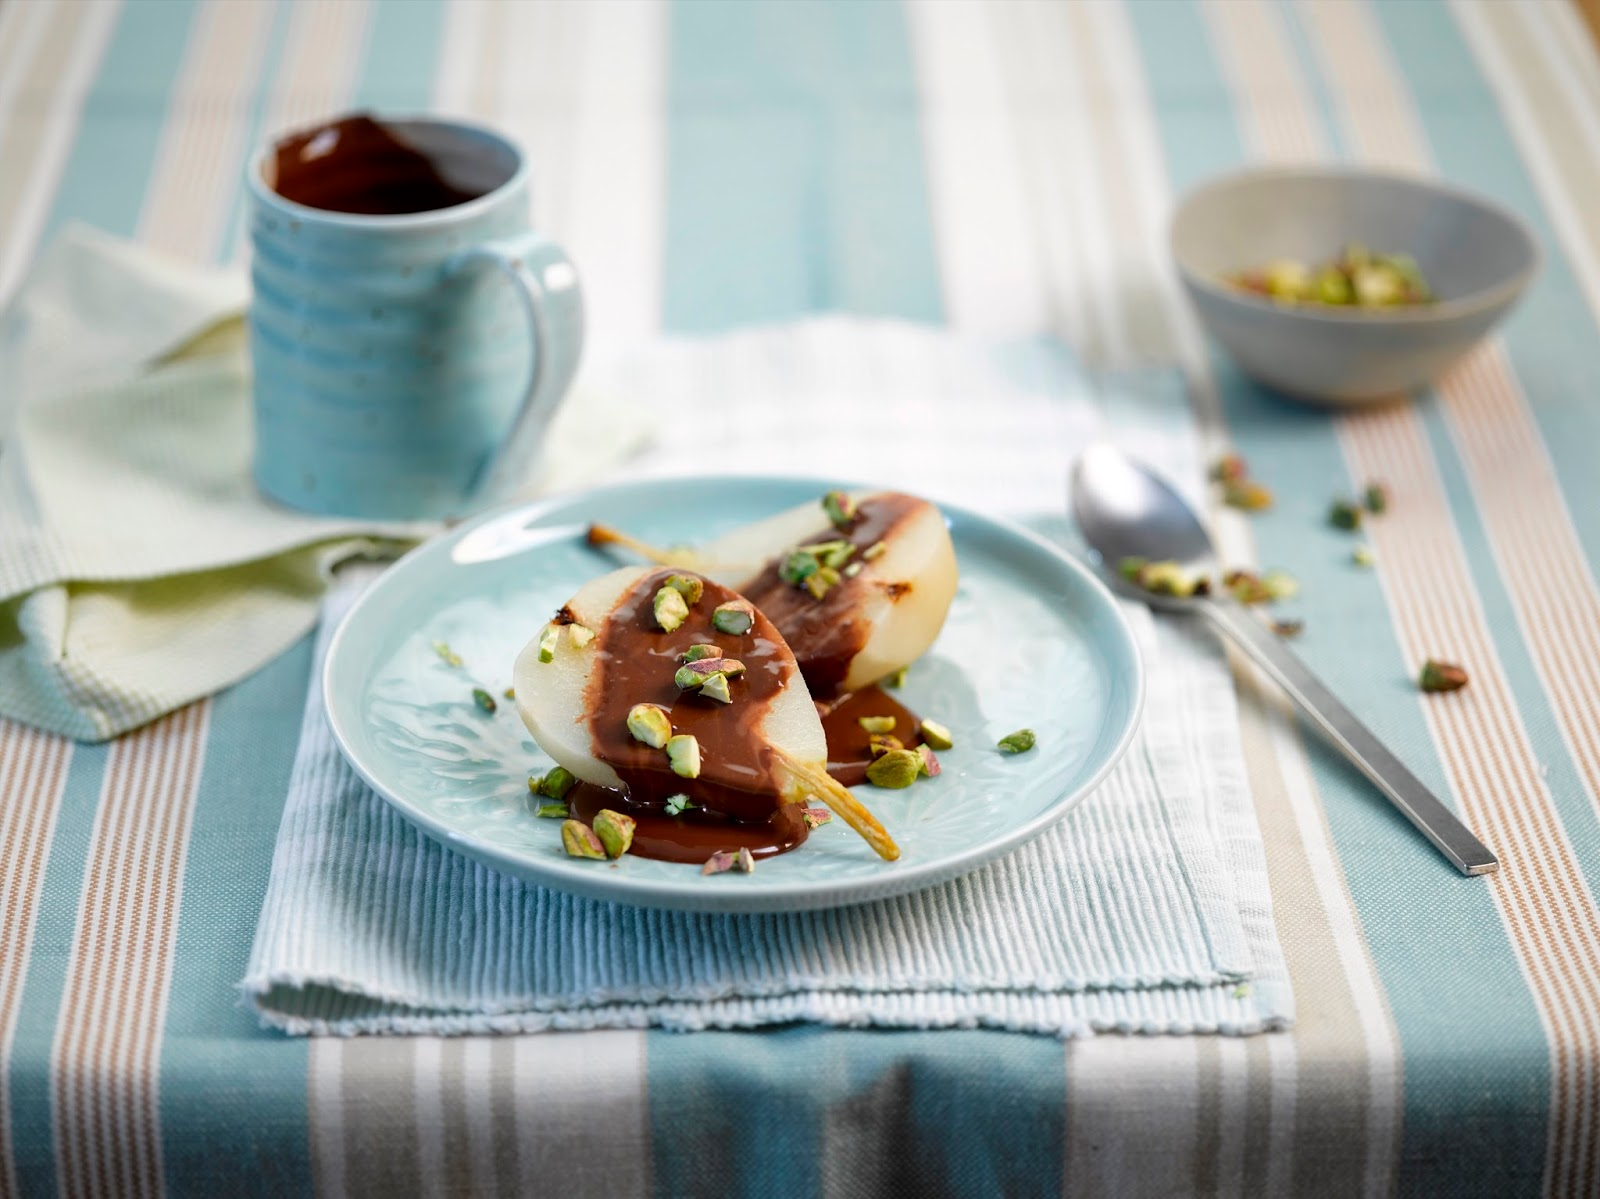 Poached Pears With Chocolate Sauce And Pistachios